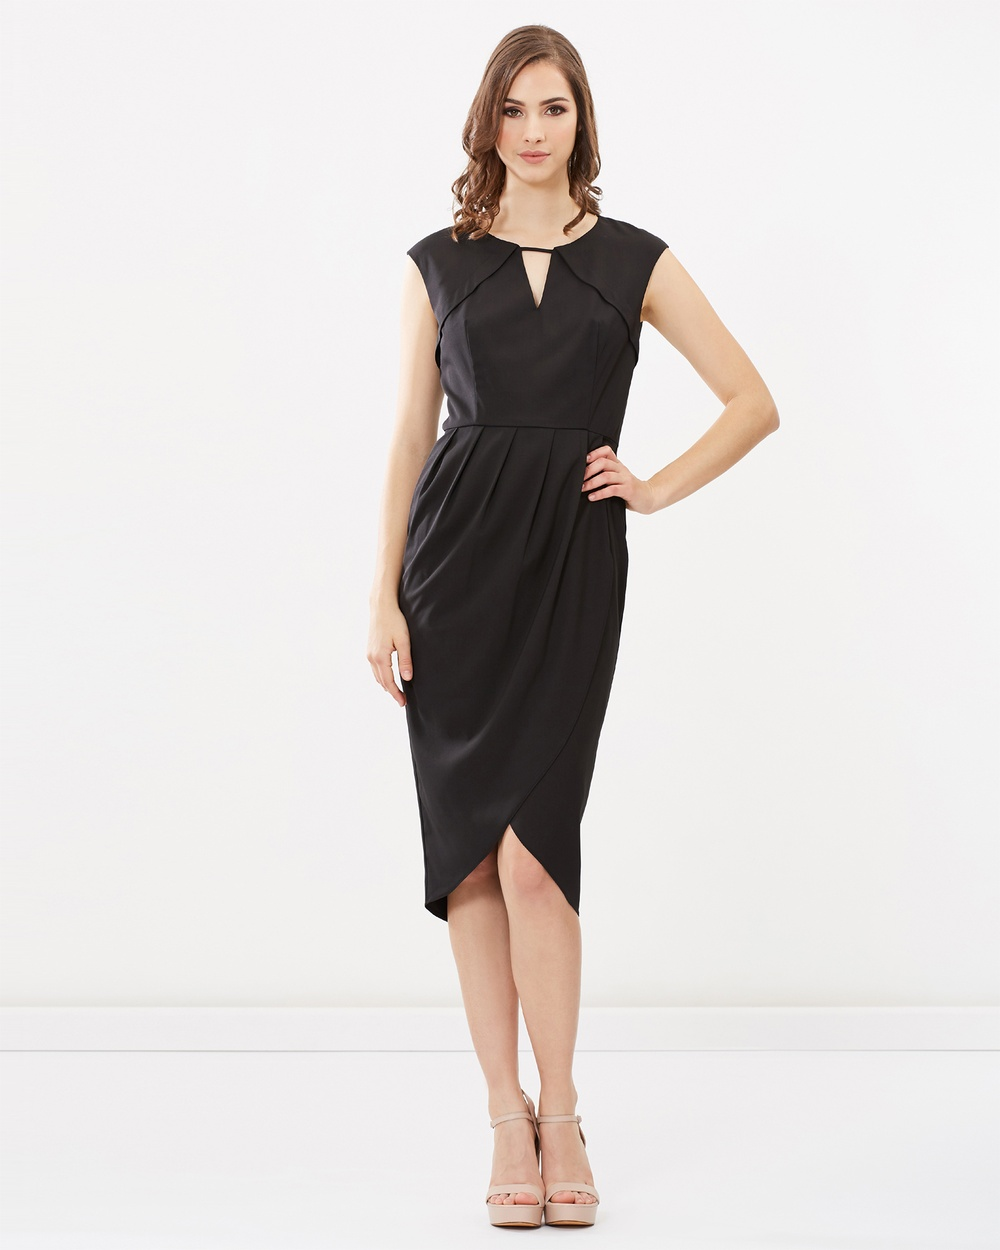 Pink Ruby Seabreeze Cut Out Dress Dresses Black Seabreeze Cut-Out Dress